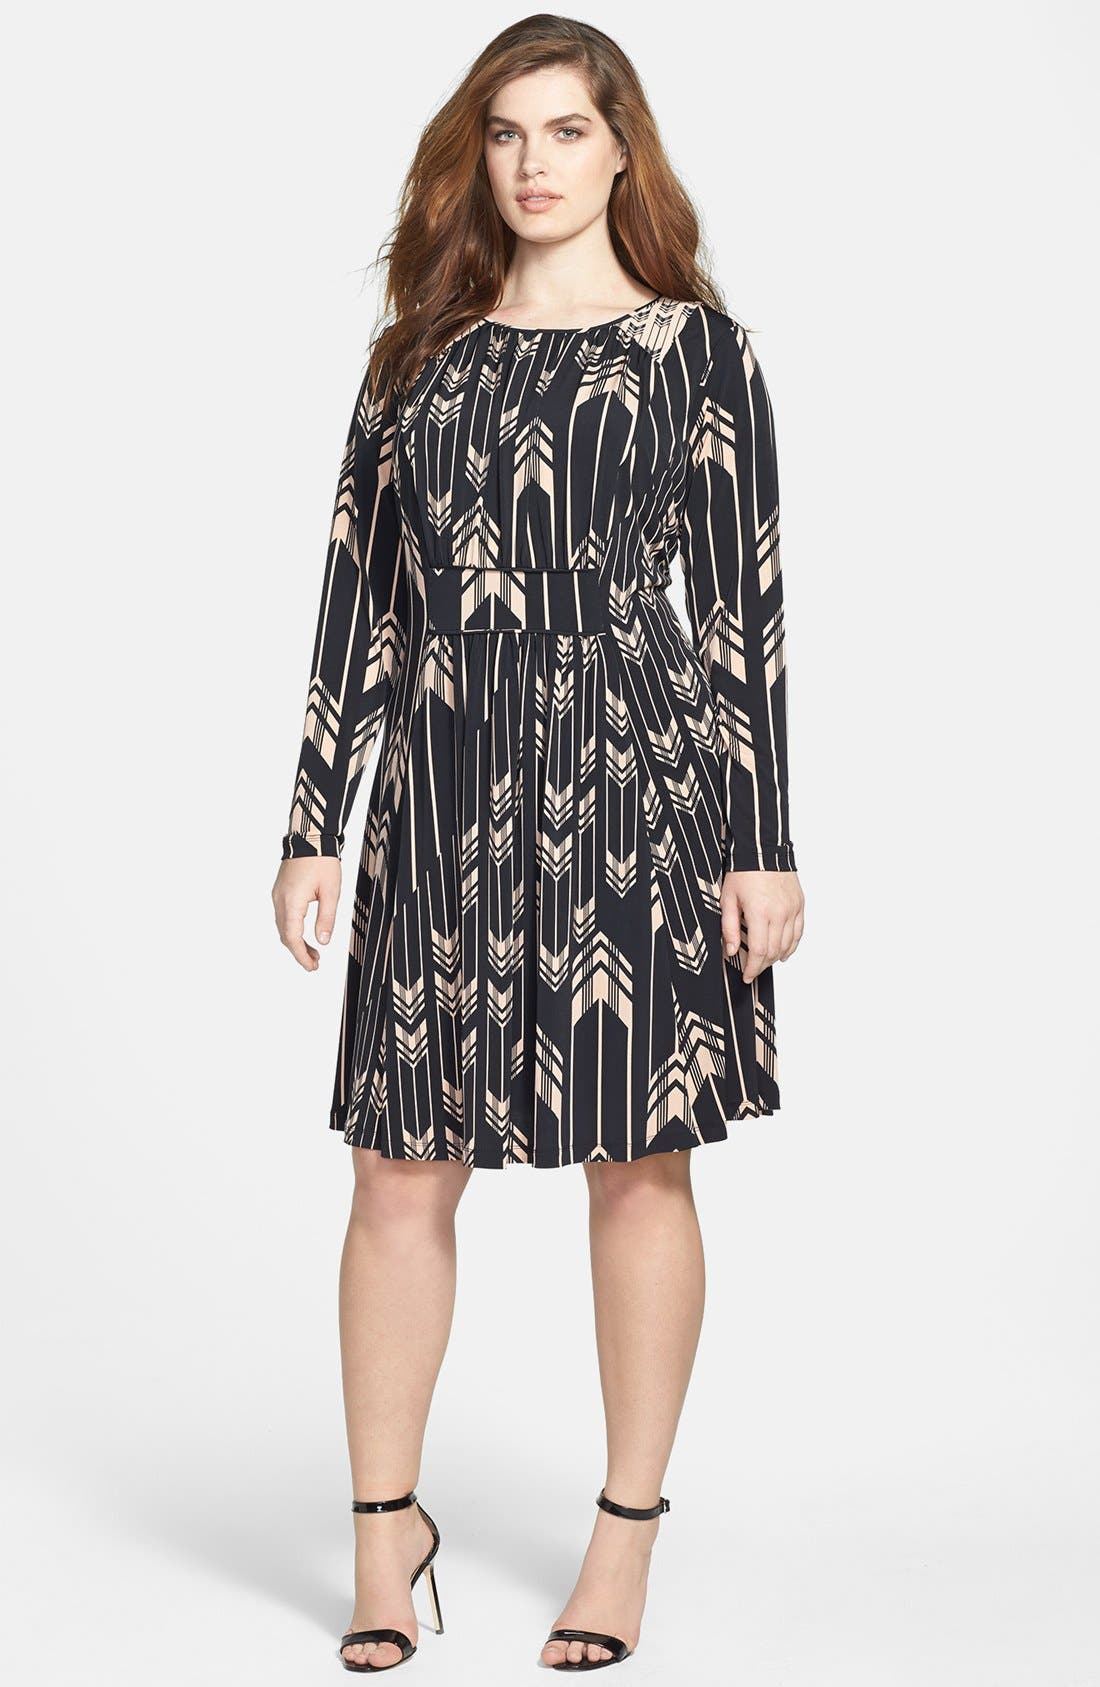 Main Image - Jessica Simpson Print Fit & Flare Dress (Plus Size)